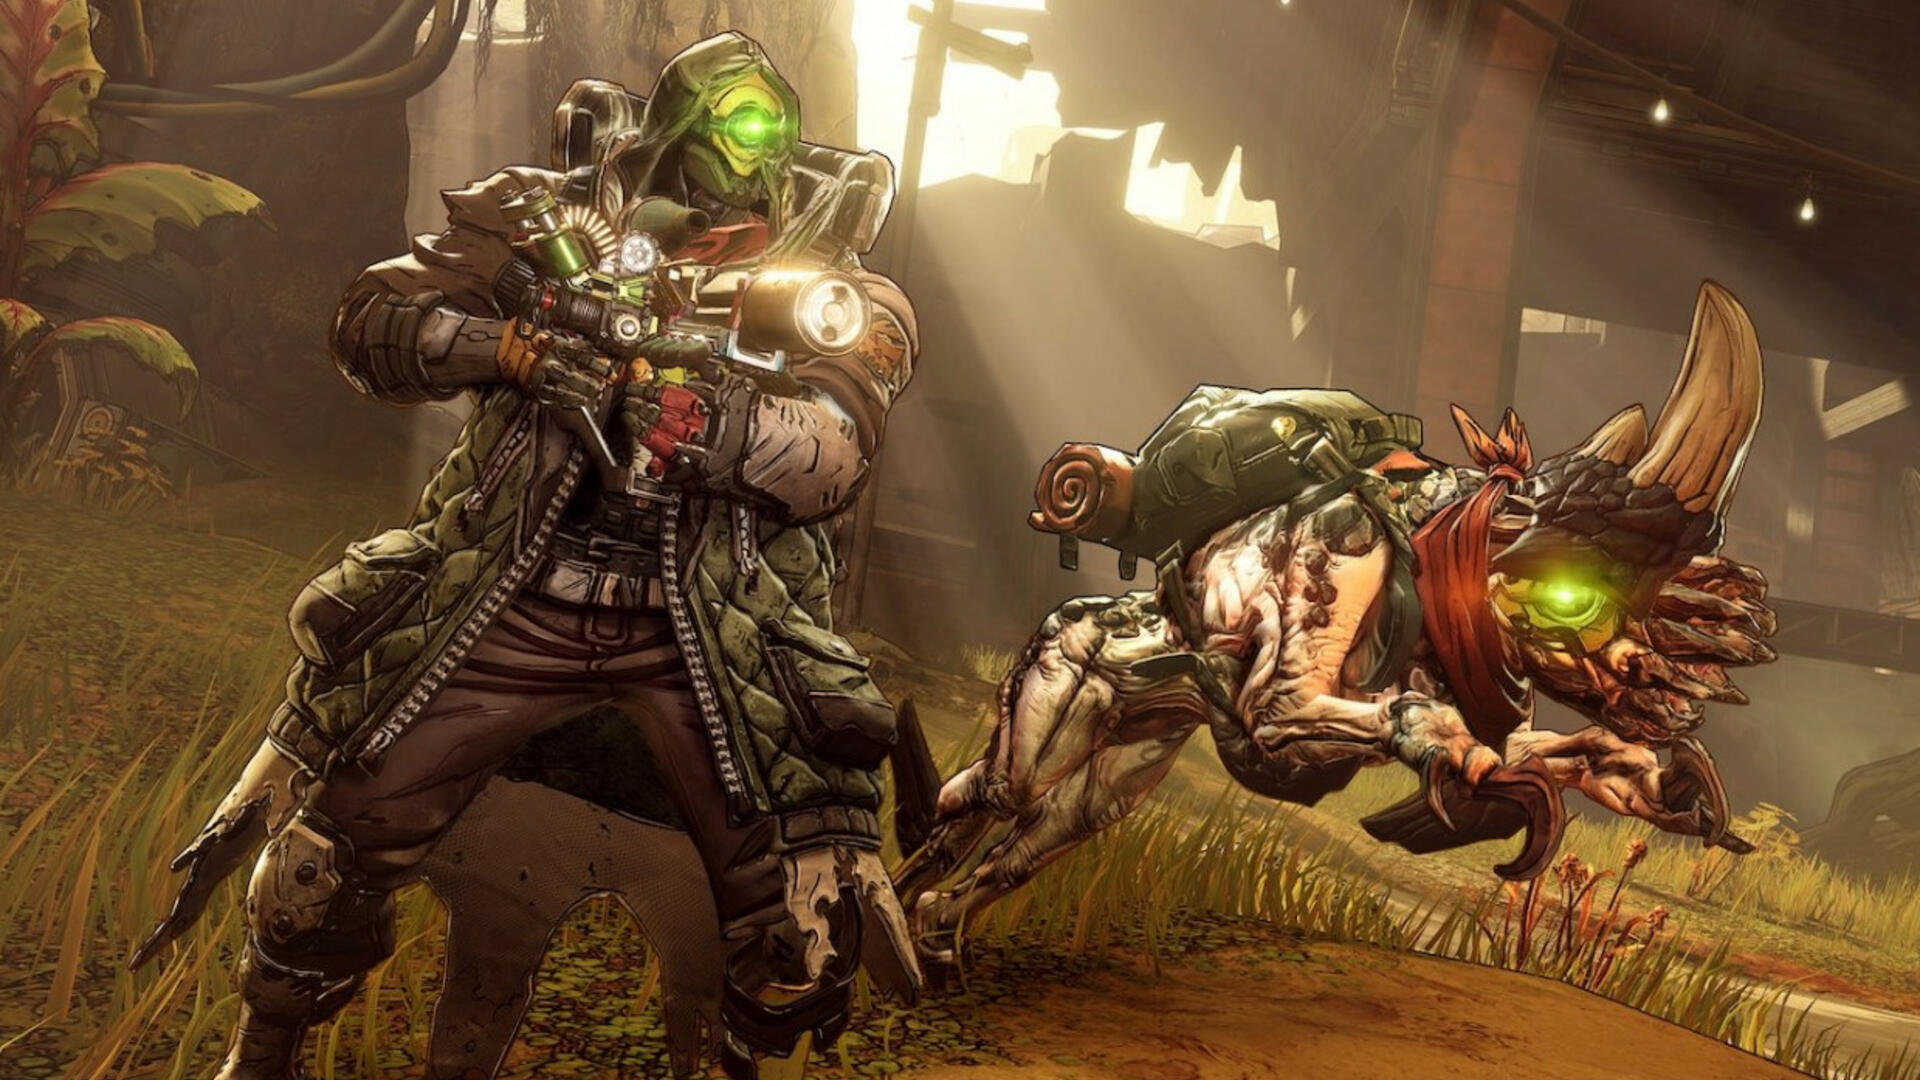 2K Confirms Borderlands 3 Will Have Cosmetic Microtransactions Following Gearbox CEO's Twitter Tirade